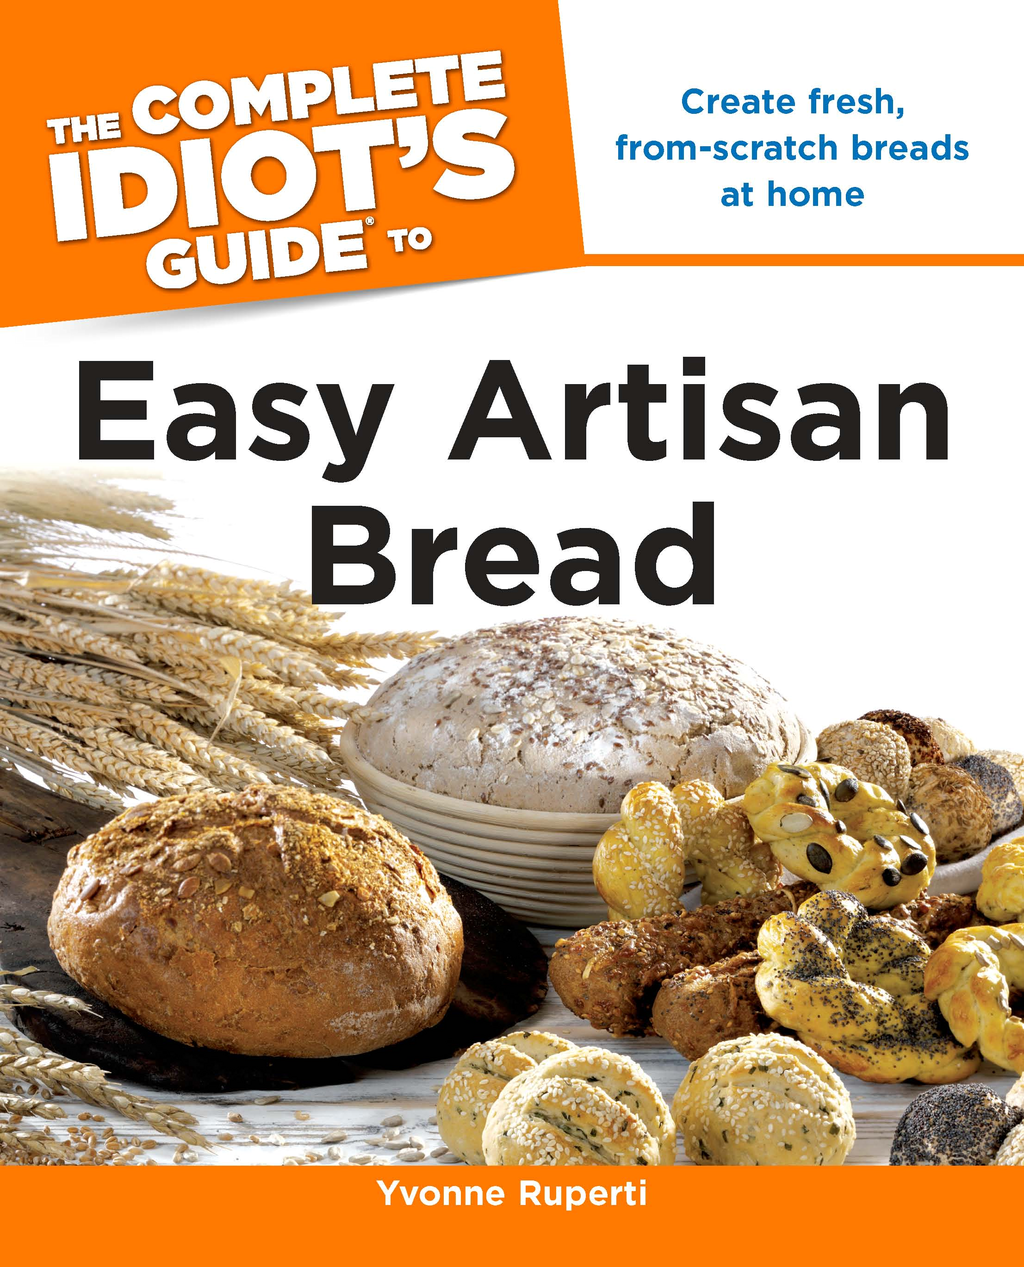 The Complete Idiot's Guide to Easy Artisan Bread By: Yvonne Ruperti